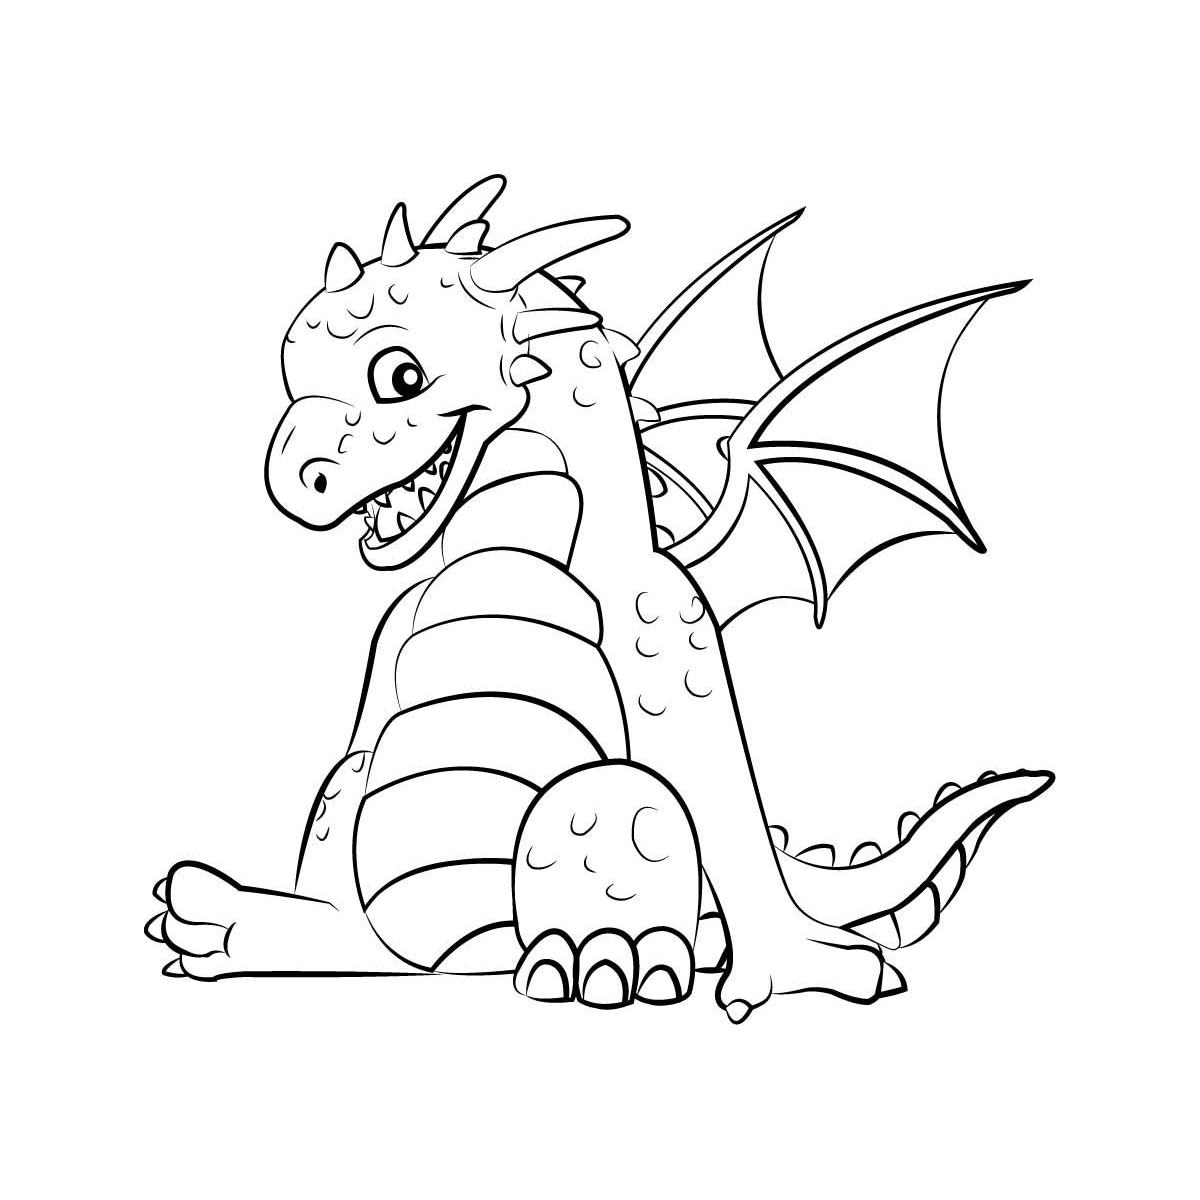 Cool Dragon Coloring Page Cute Dragon Coloring Pages